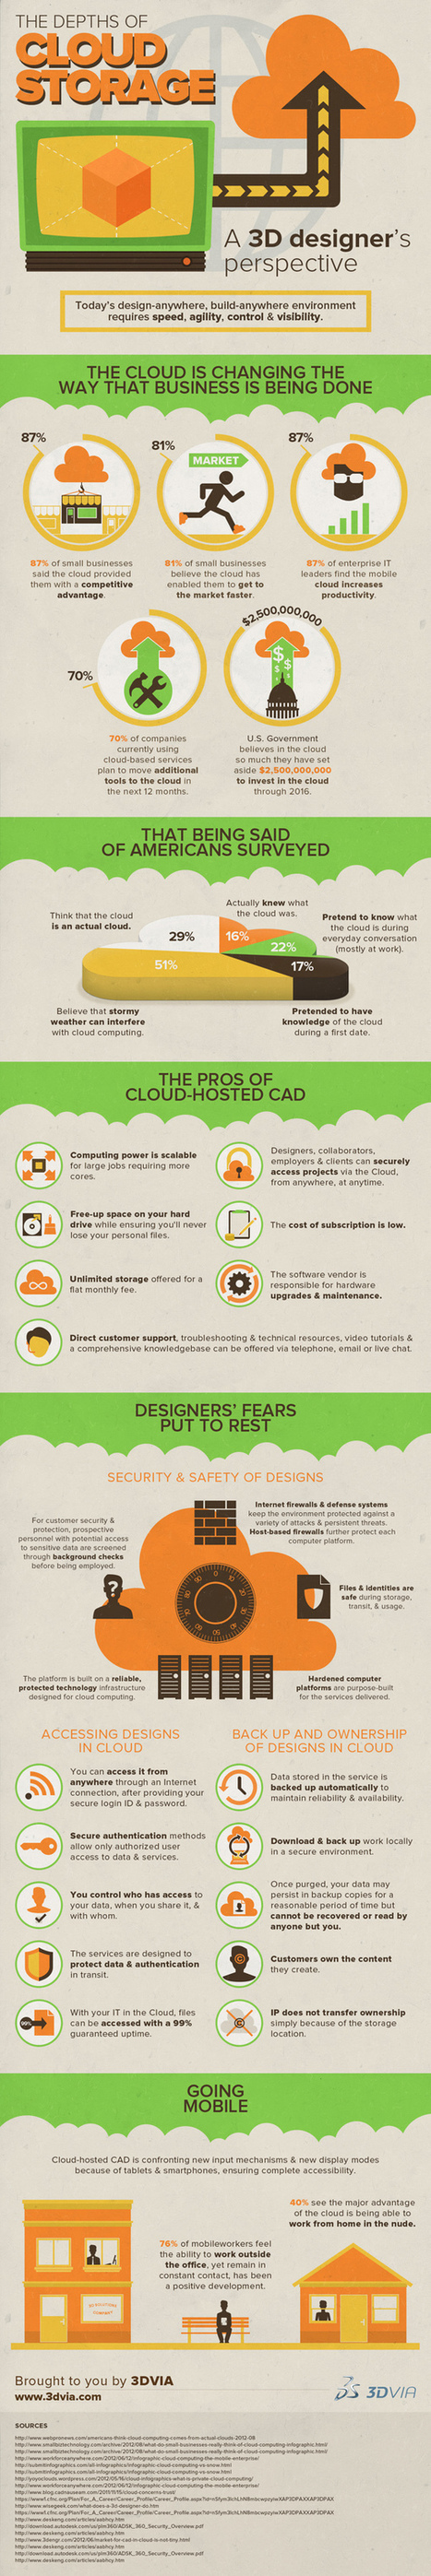 The Cloud is Your Friend [Infographic] | Daily Infographic | Technology Tips | Scoop.it